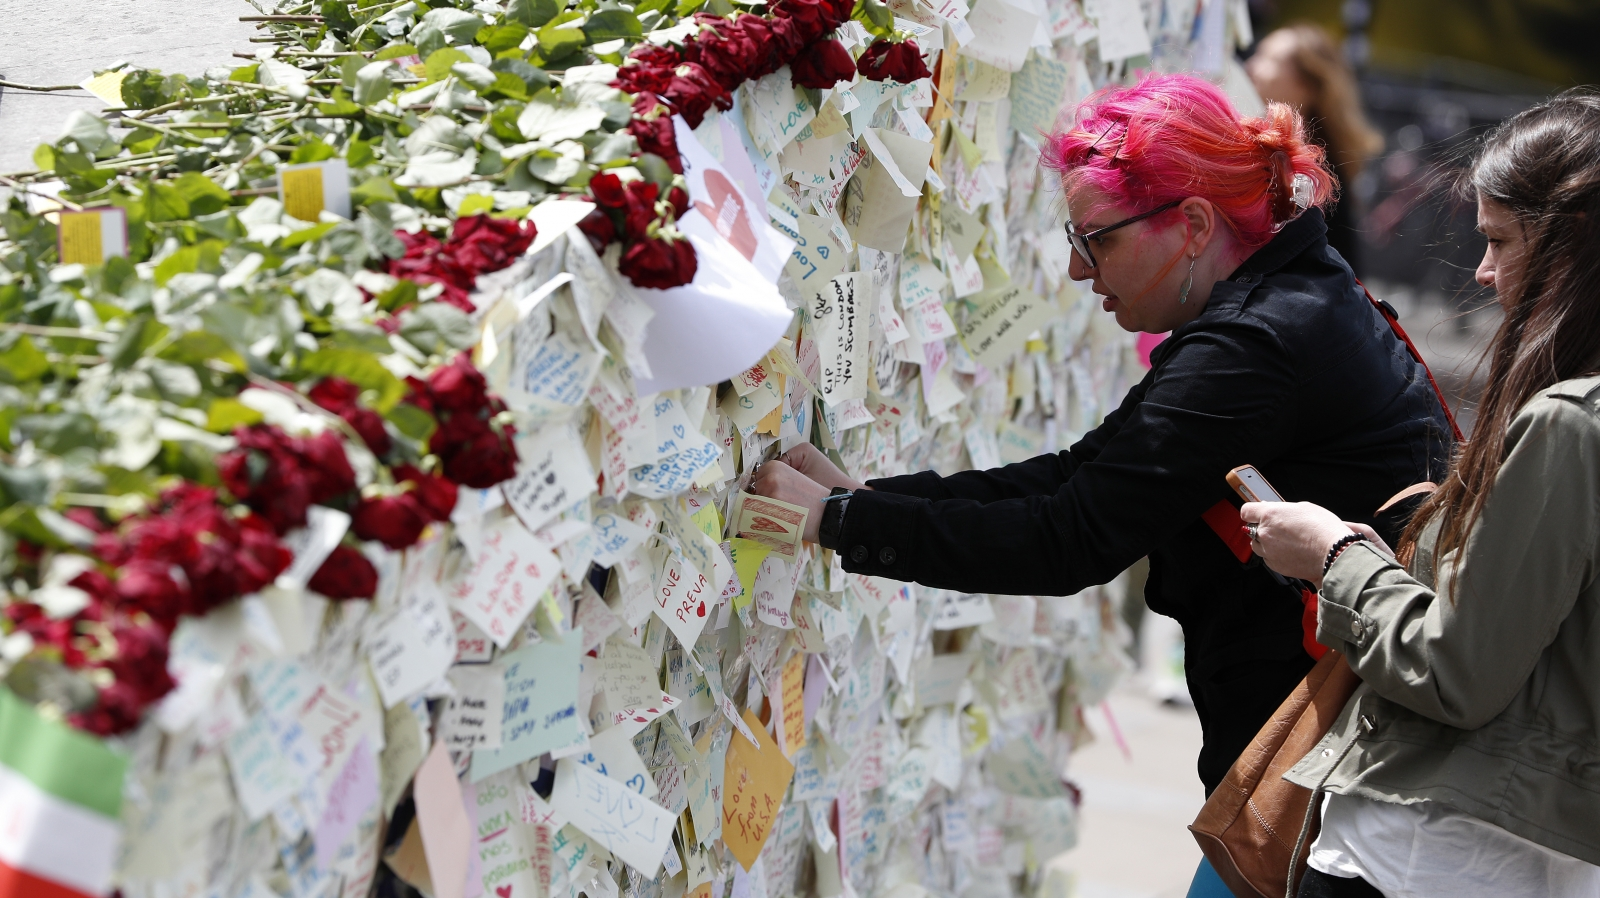 Well-wishers leave a message on London Bridge following the June terror attack last year